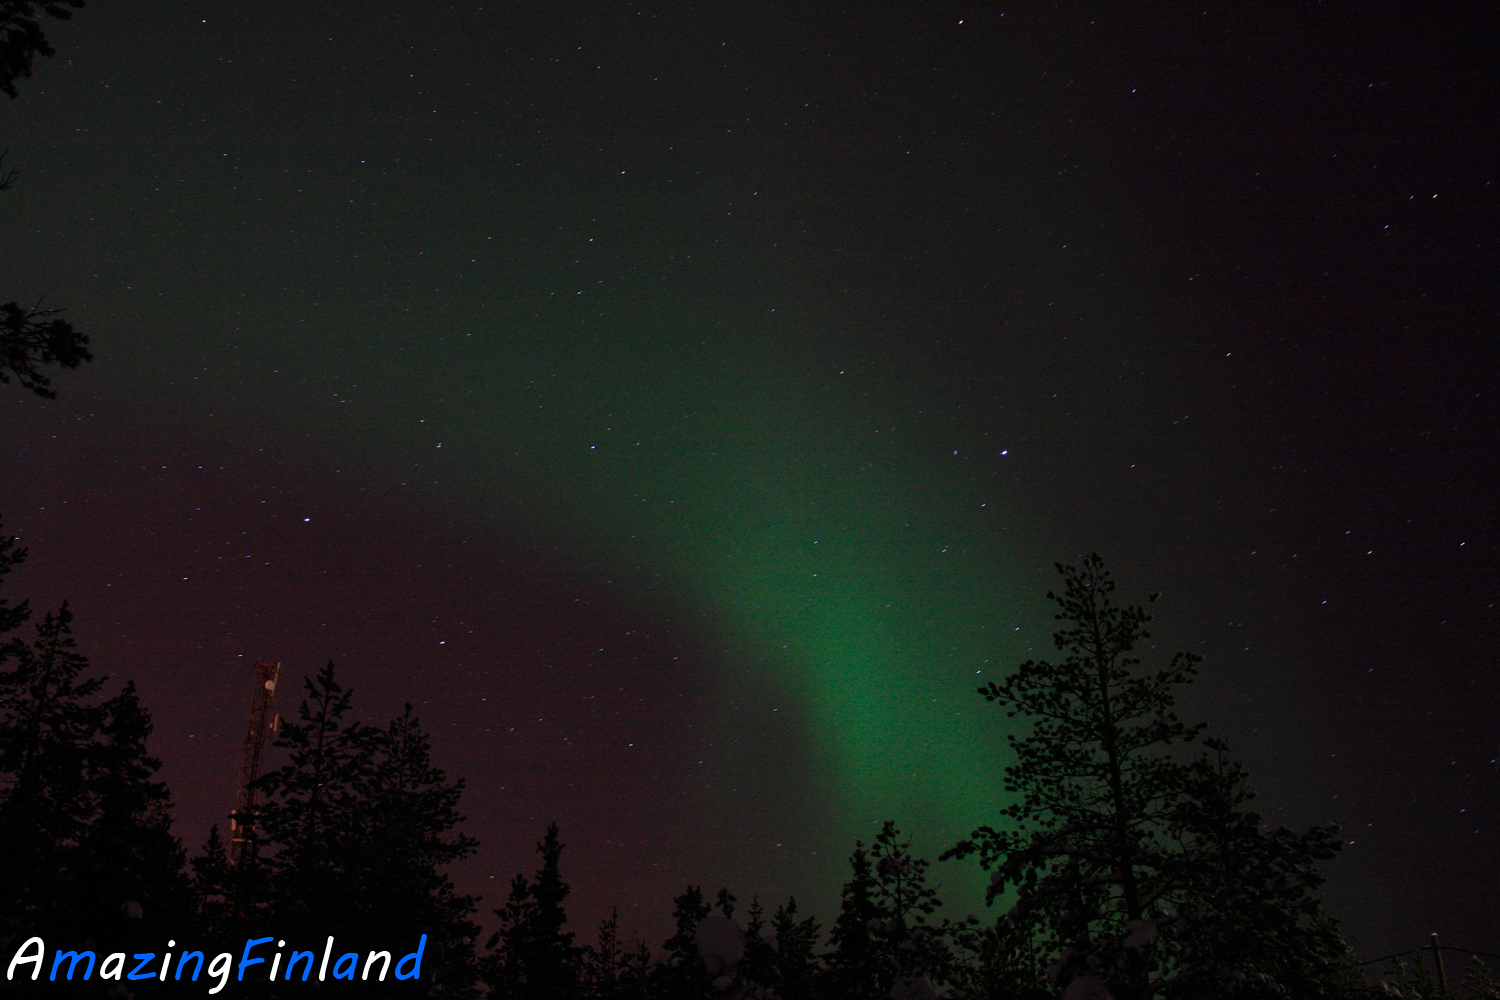 Amazing Finland: Northern Lights Forecast